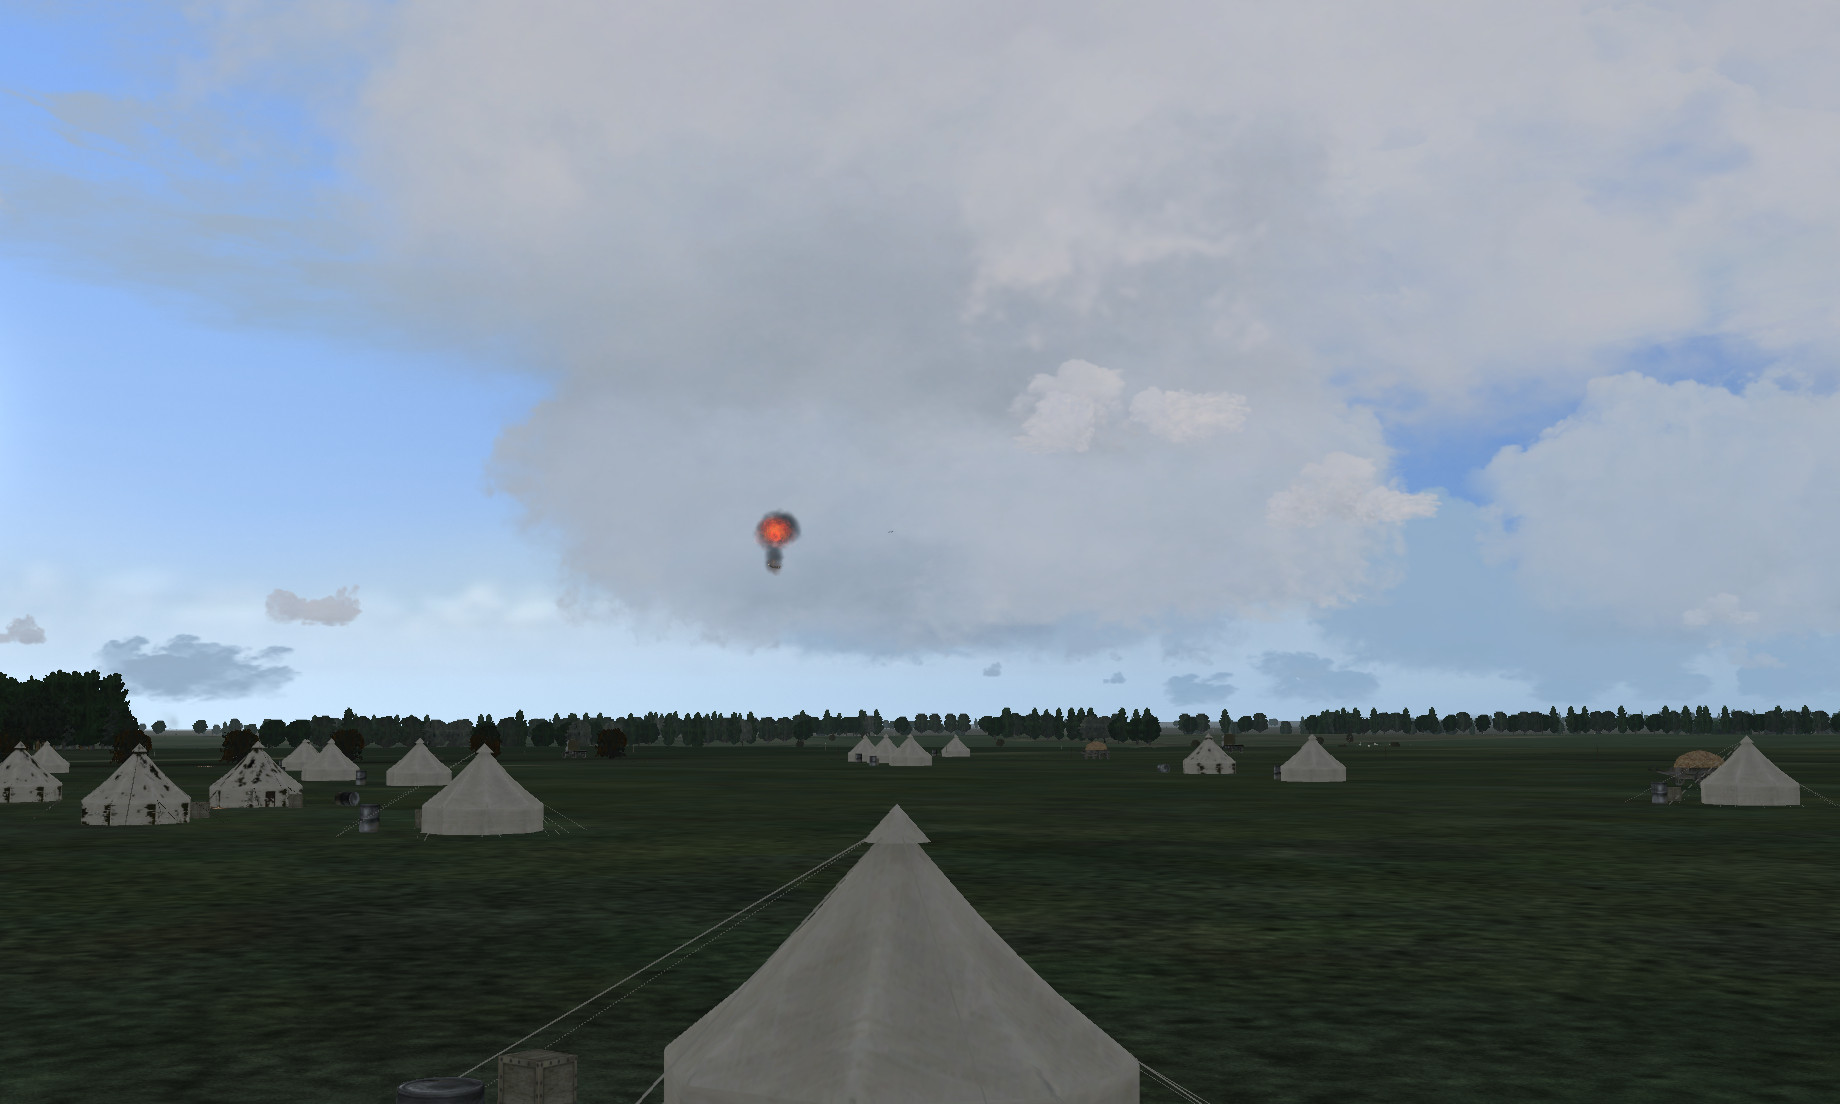 y balloon destroyed over camp.jpg